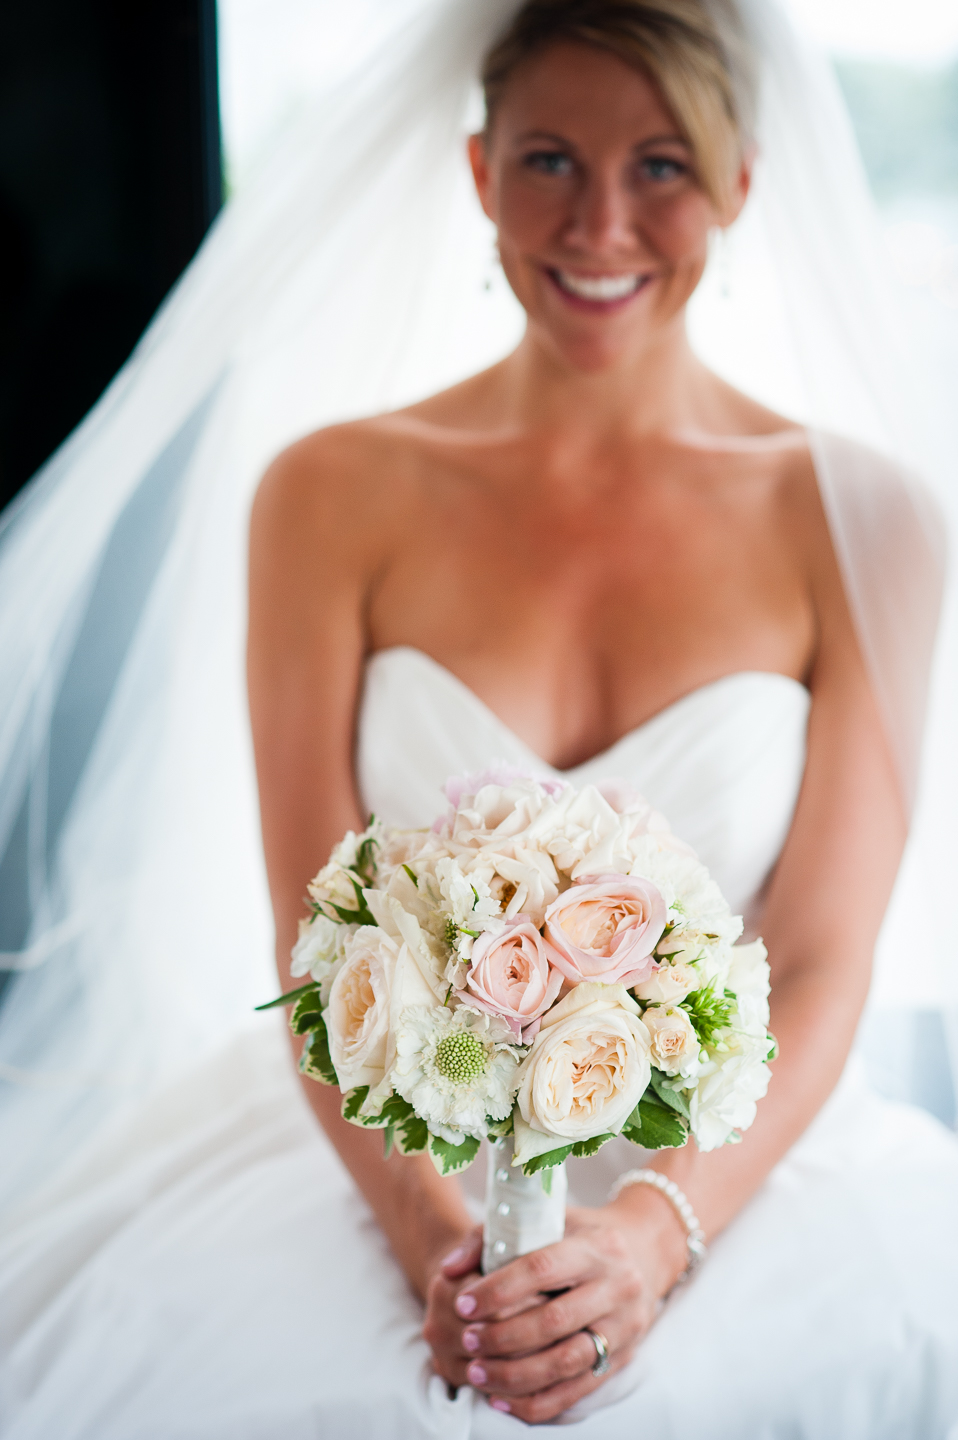 gorgeous bridal bouquet is show off by bride during the trolley ride to her wedding ceremony